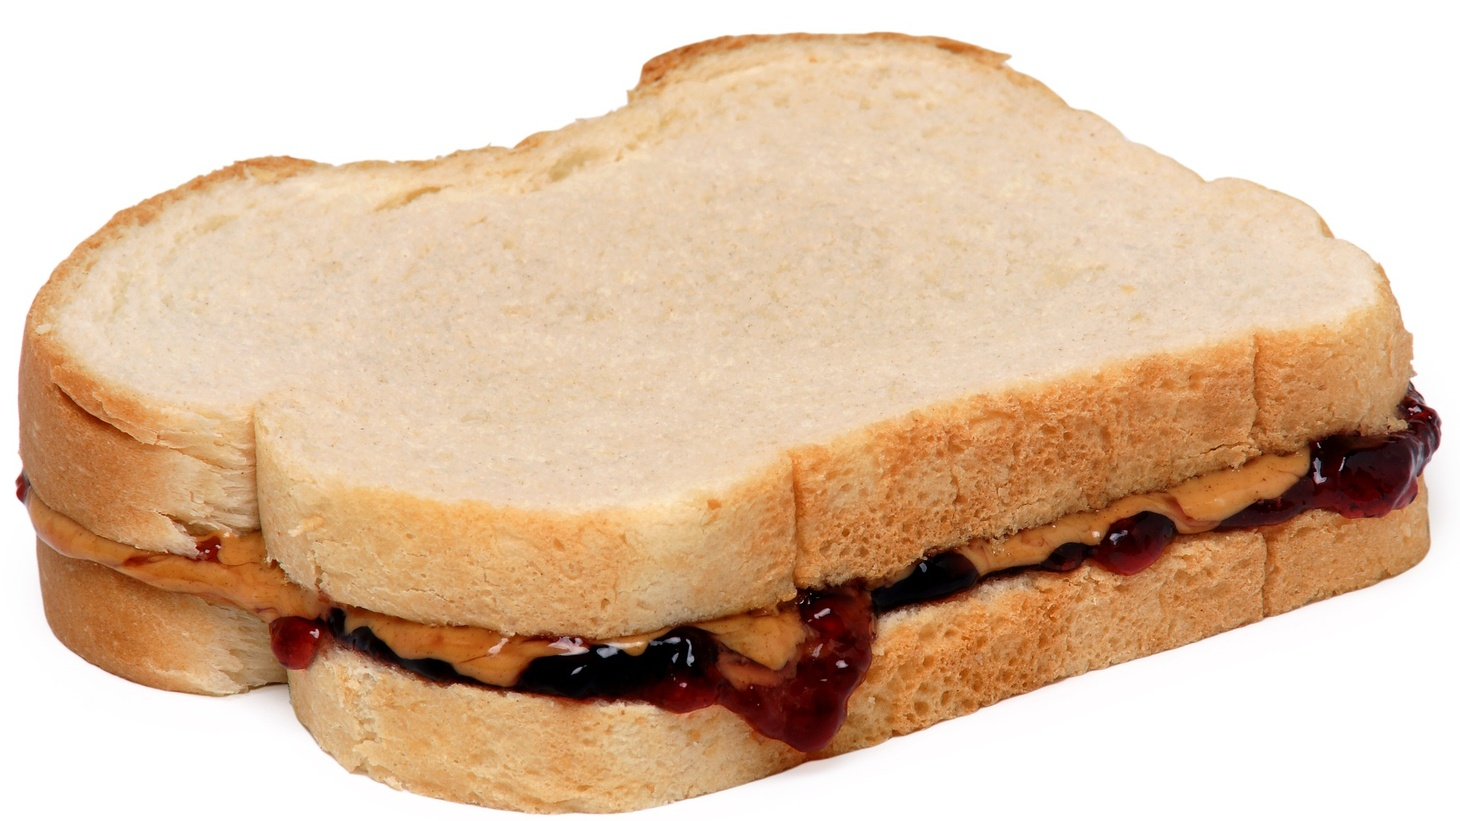 Zach Brooks offers lunchtime suggestions that go beyond your average PB&J.